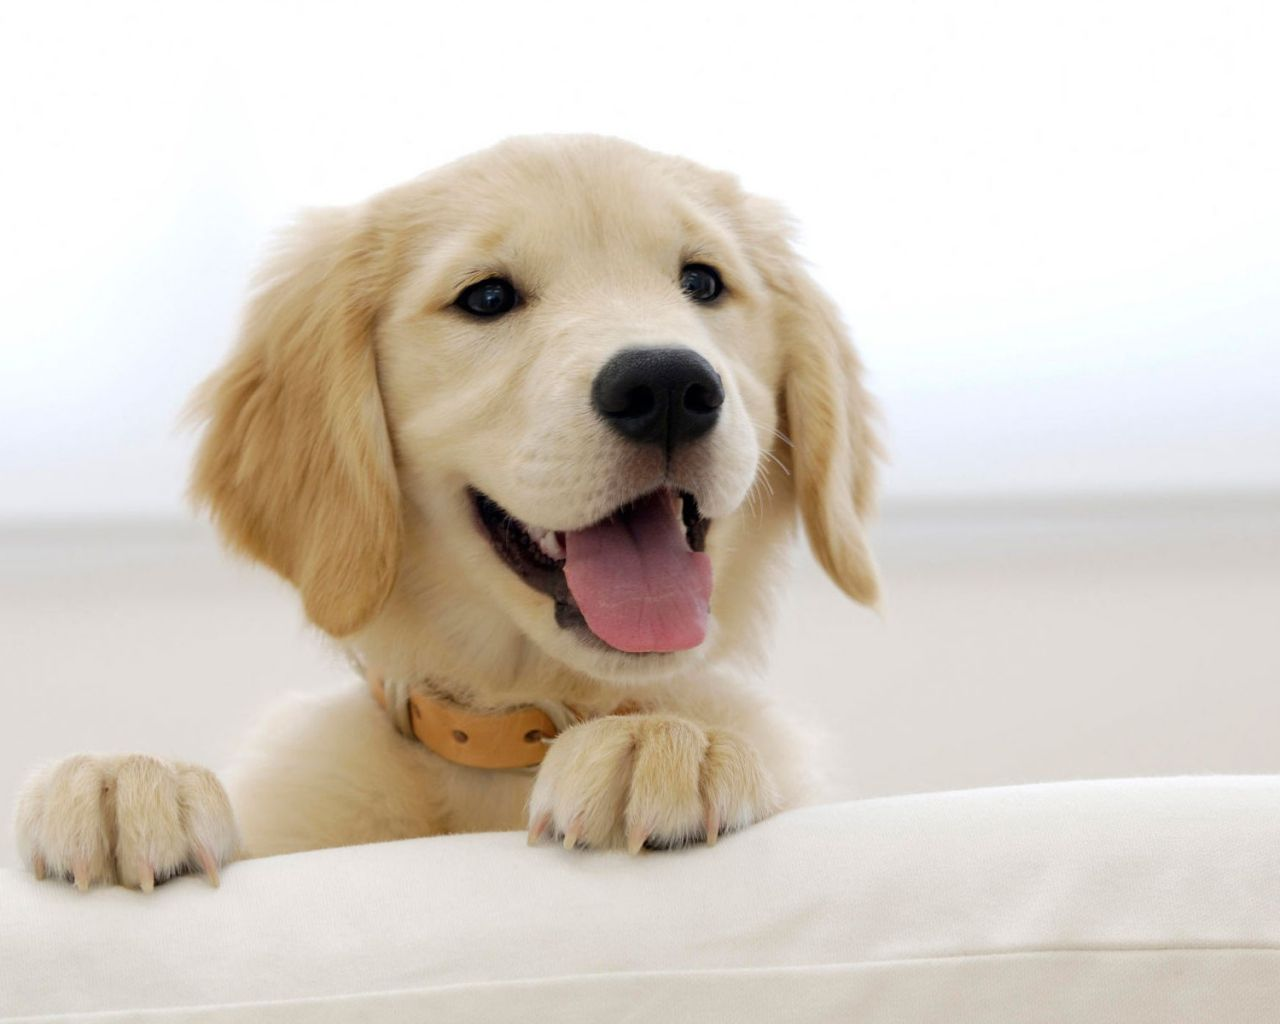 FOR THE GOLDEN RETREIVER FANS!!! HERE WE ARE!!! THE GOLDEN TIPS ON THE EARS AND THE BRIGHTLY LIT BACKGROUND CREATES A STUNNING BEAUTY AND ADORBS FACTOR IN THIS PIC!!! I JUST WANT TO PLAY WITH IT!! RAGGHT!!